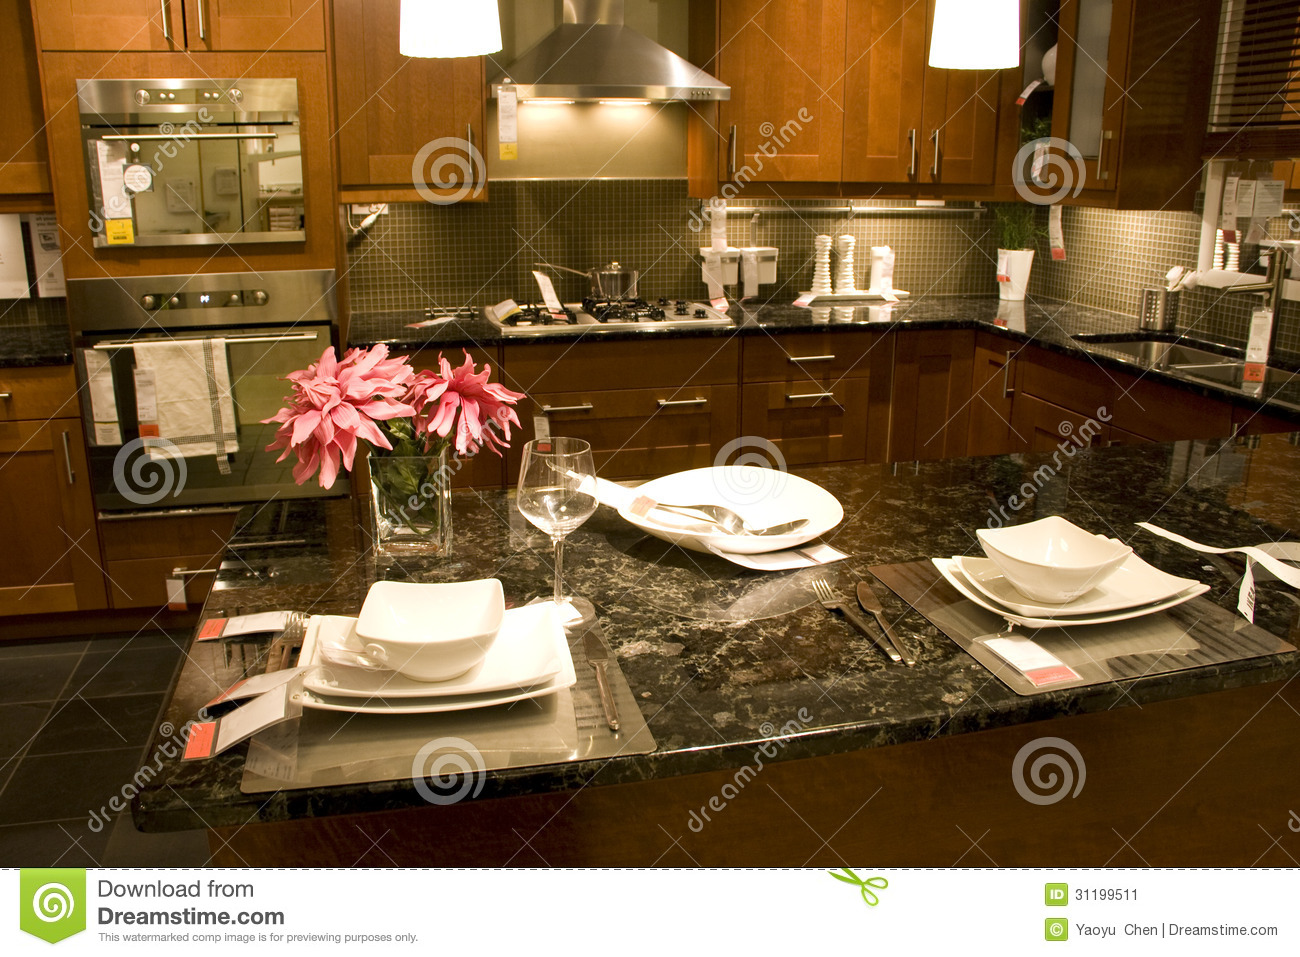 Home Interiors Kitchen Kitchen Counter Setting Home Interiors Stock Image Image 31199511